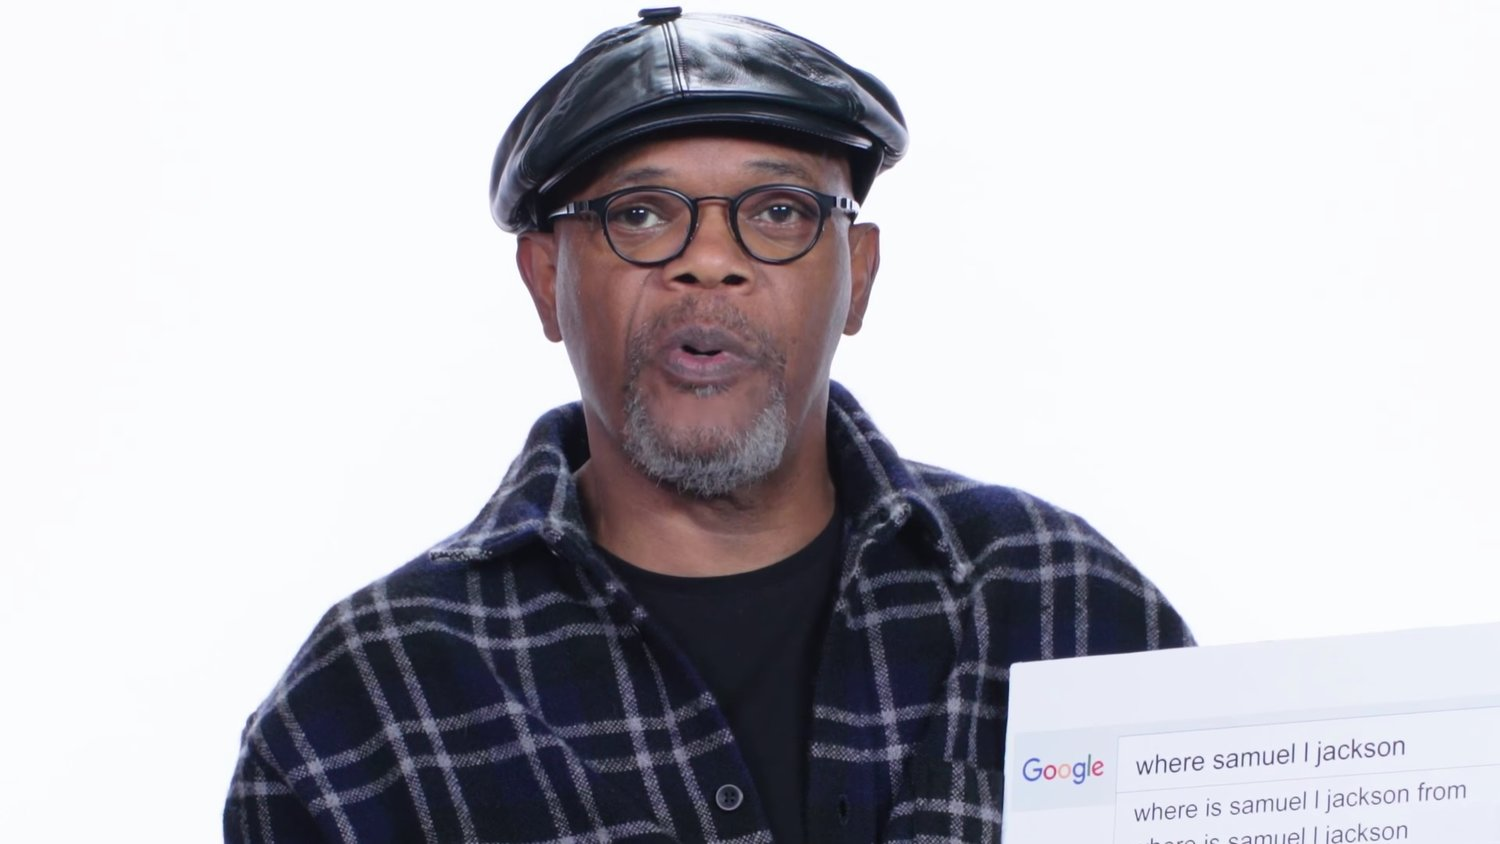 Samuel L. Jackson Answers Google's Top Search Questions About Him